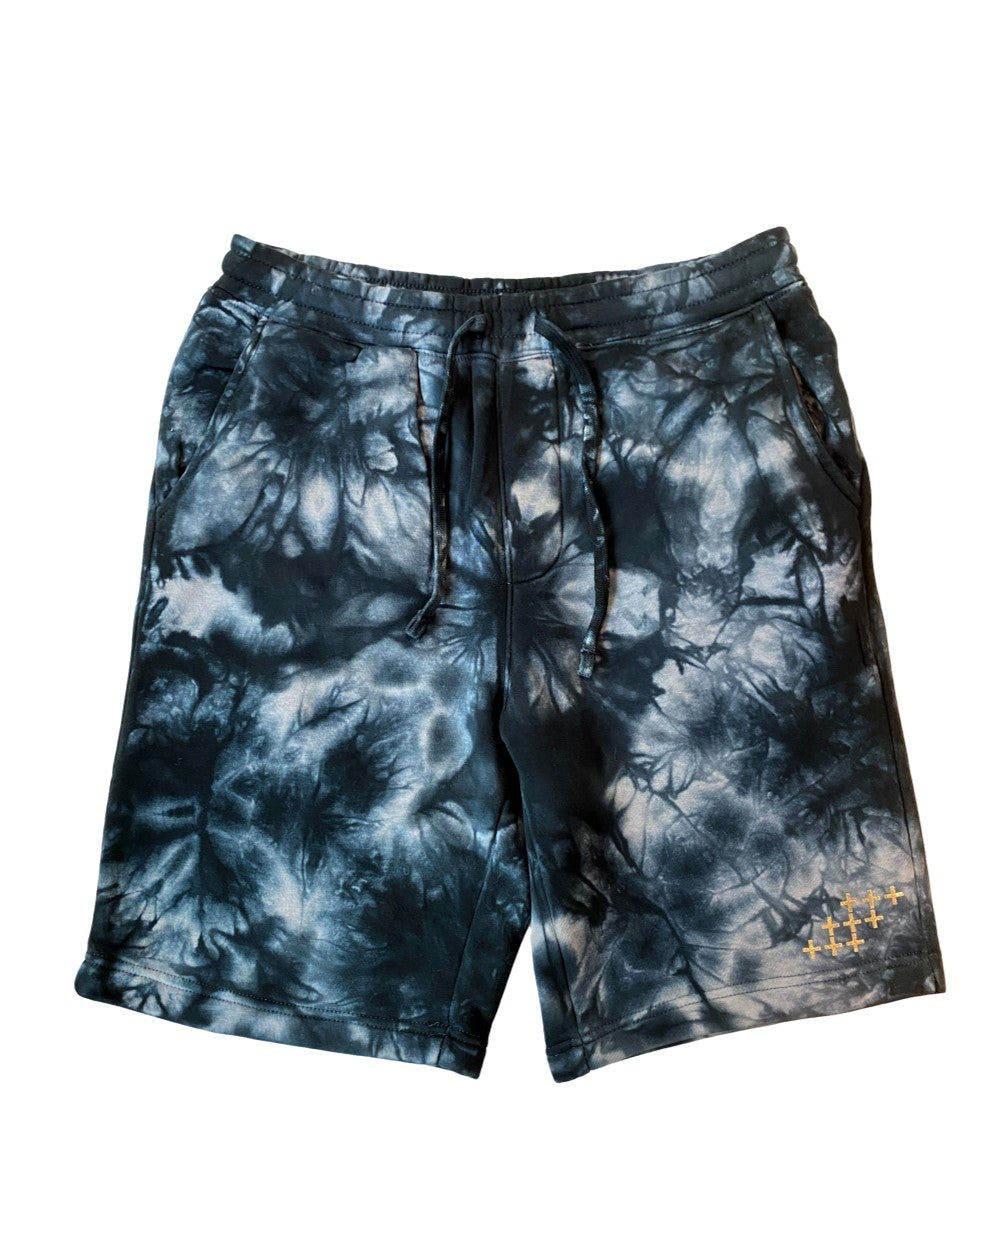 Men's Black Tie Dye Fleece Short